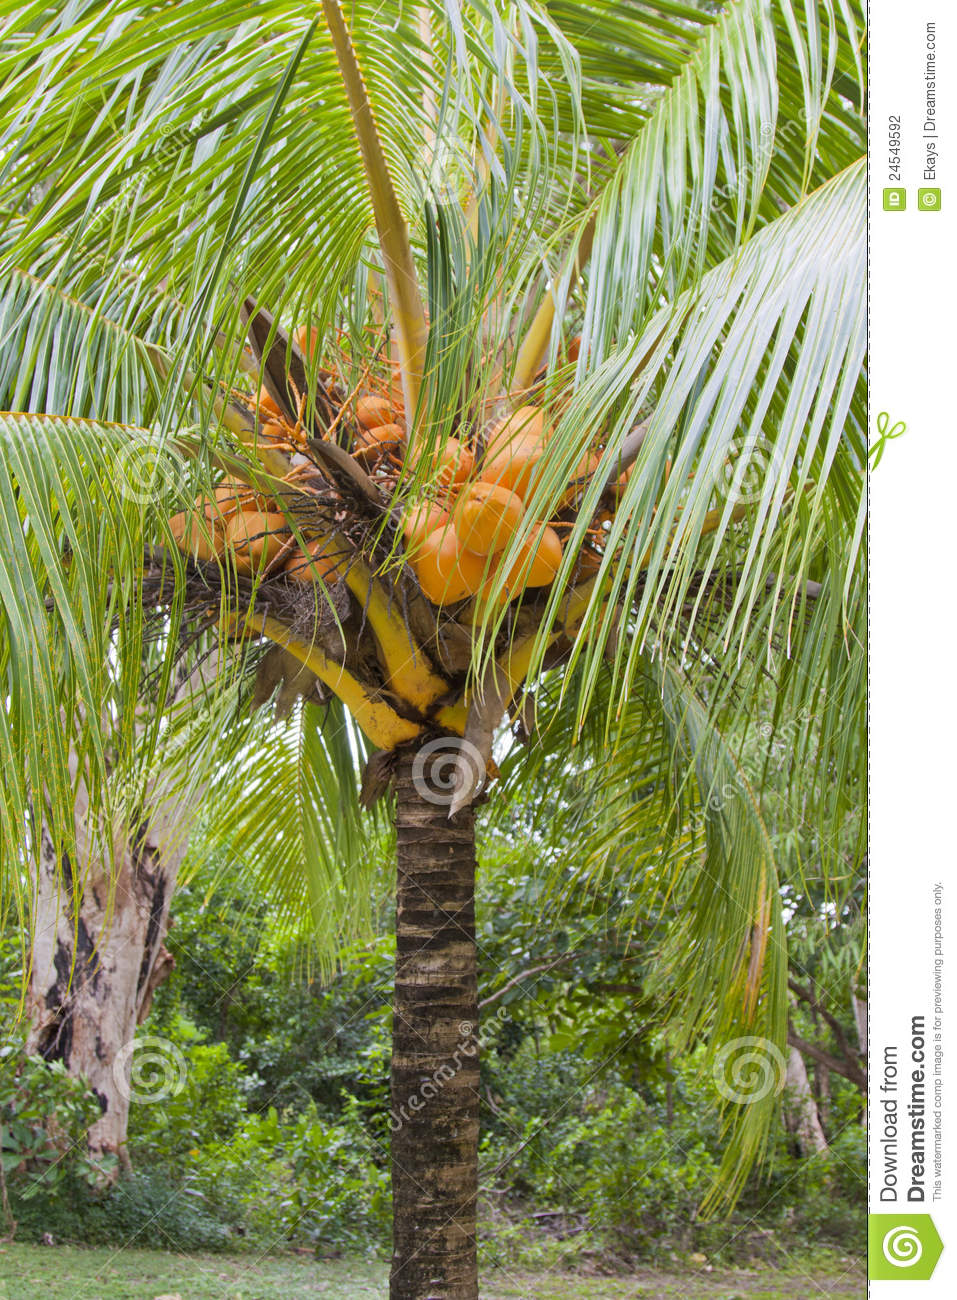 cocos nucifera 39 coconut tree dwarf stock photography image 24549592. Black Bedroom Furniture Sets. Home Design Ideas